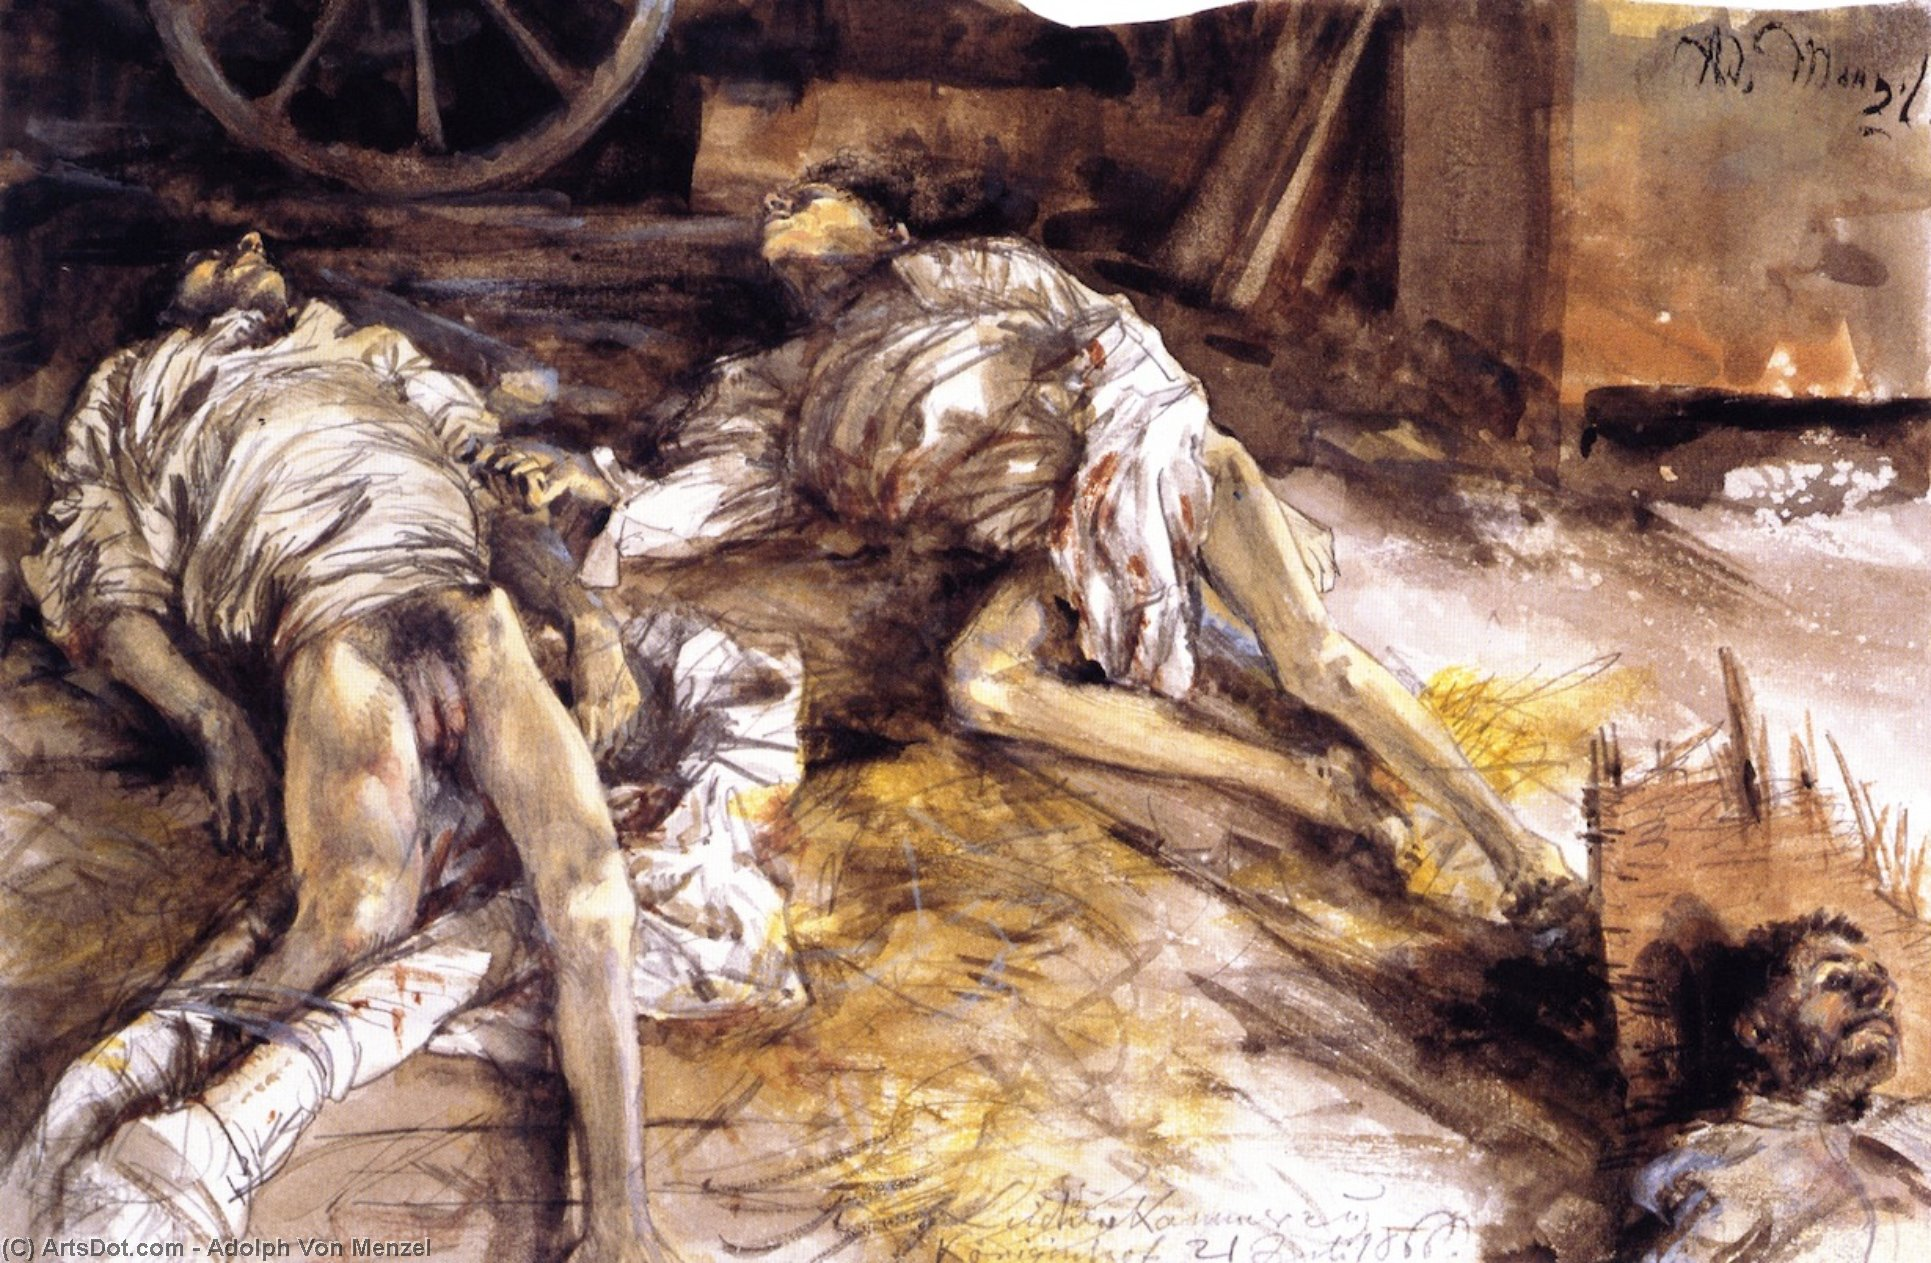 Two Dead Soldiers in a Barn, Watercolour by Adolph Menzel (1815-1905, Poland)